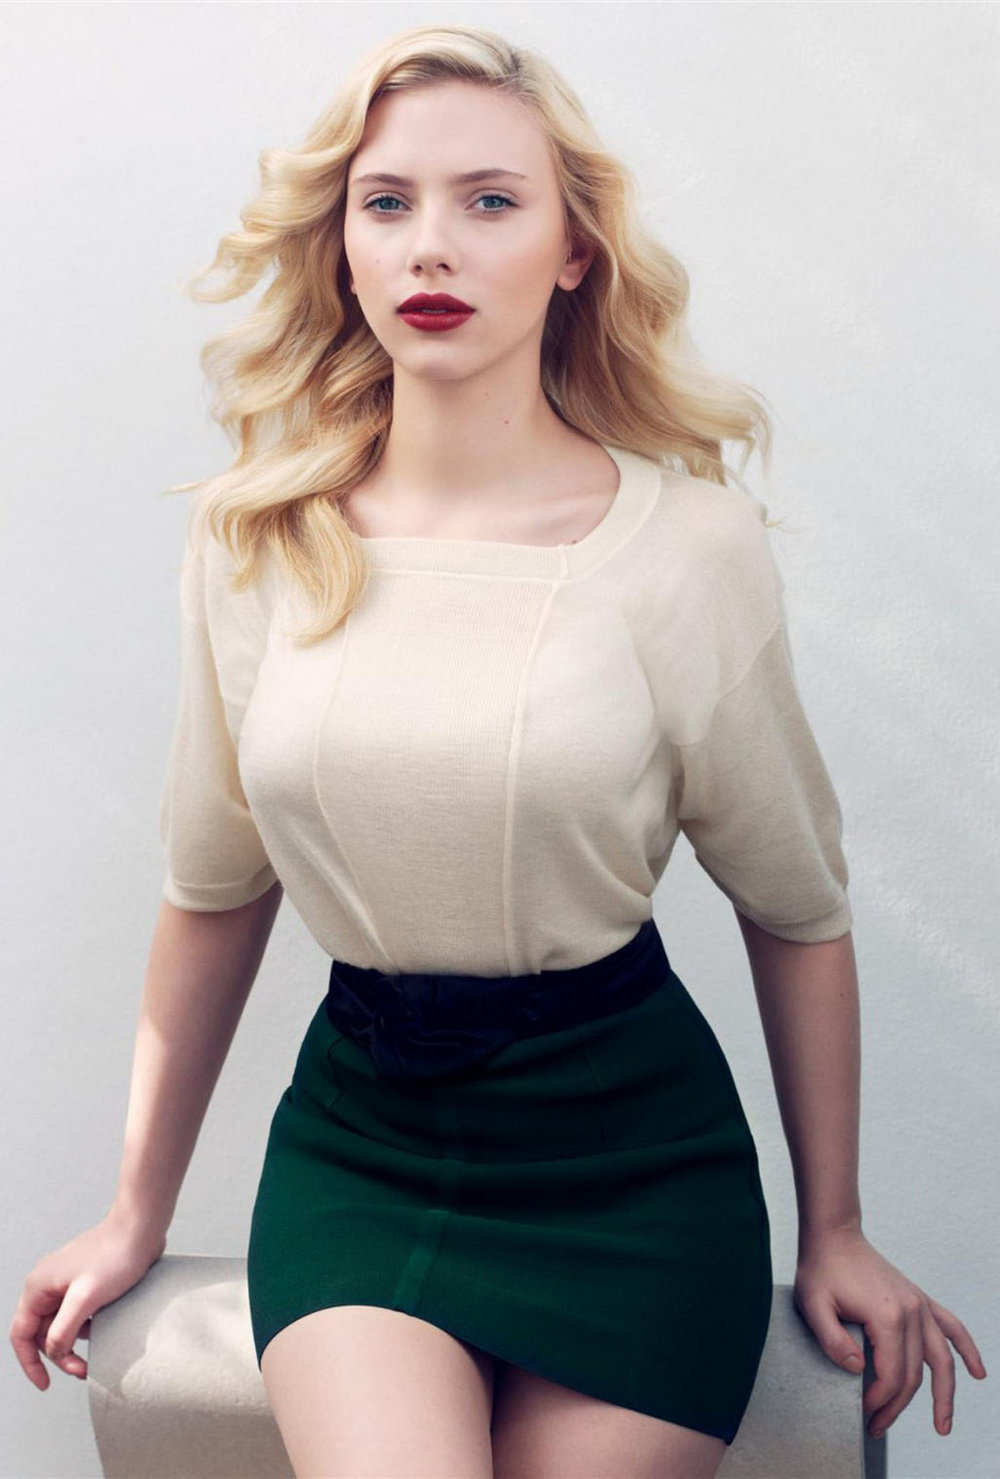 detail-bombshell-sexy-style-type-scarlettjohansson-miniskirt-white-blouse-green-hollywood-old-tinywaist-blonde-hair-wavy-red-lips-fairskin.jpg